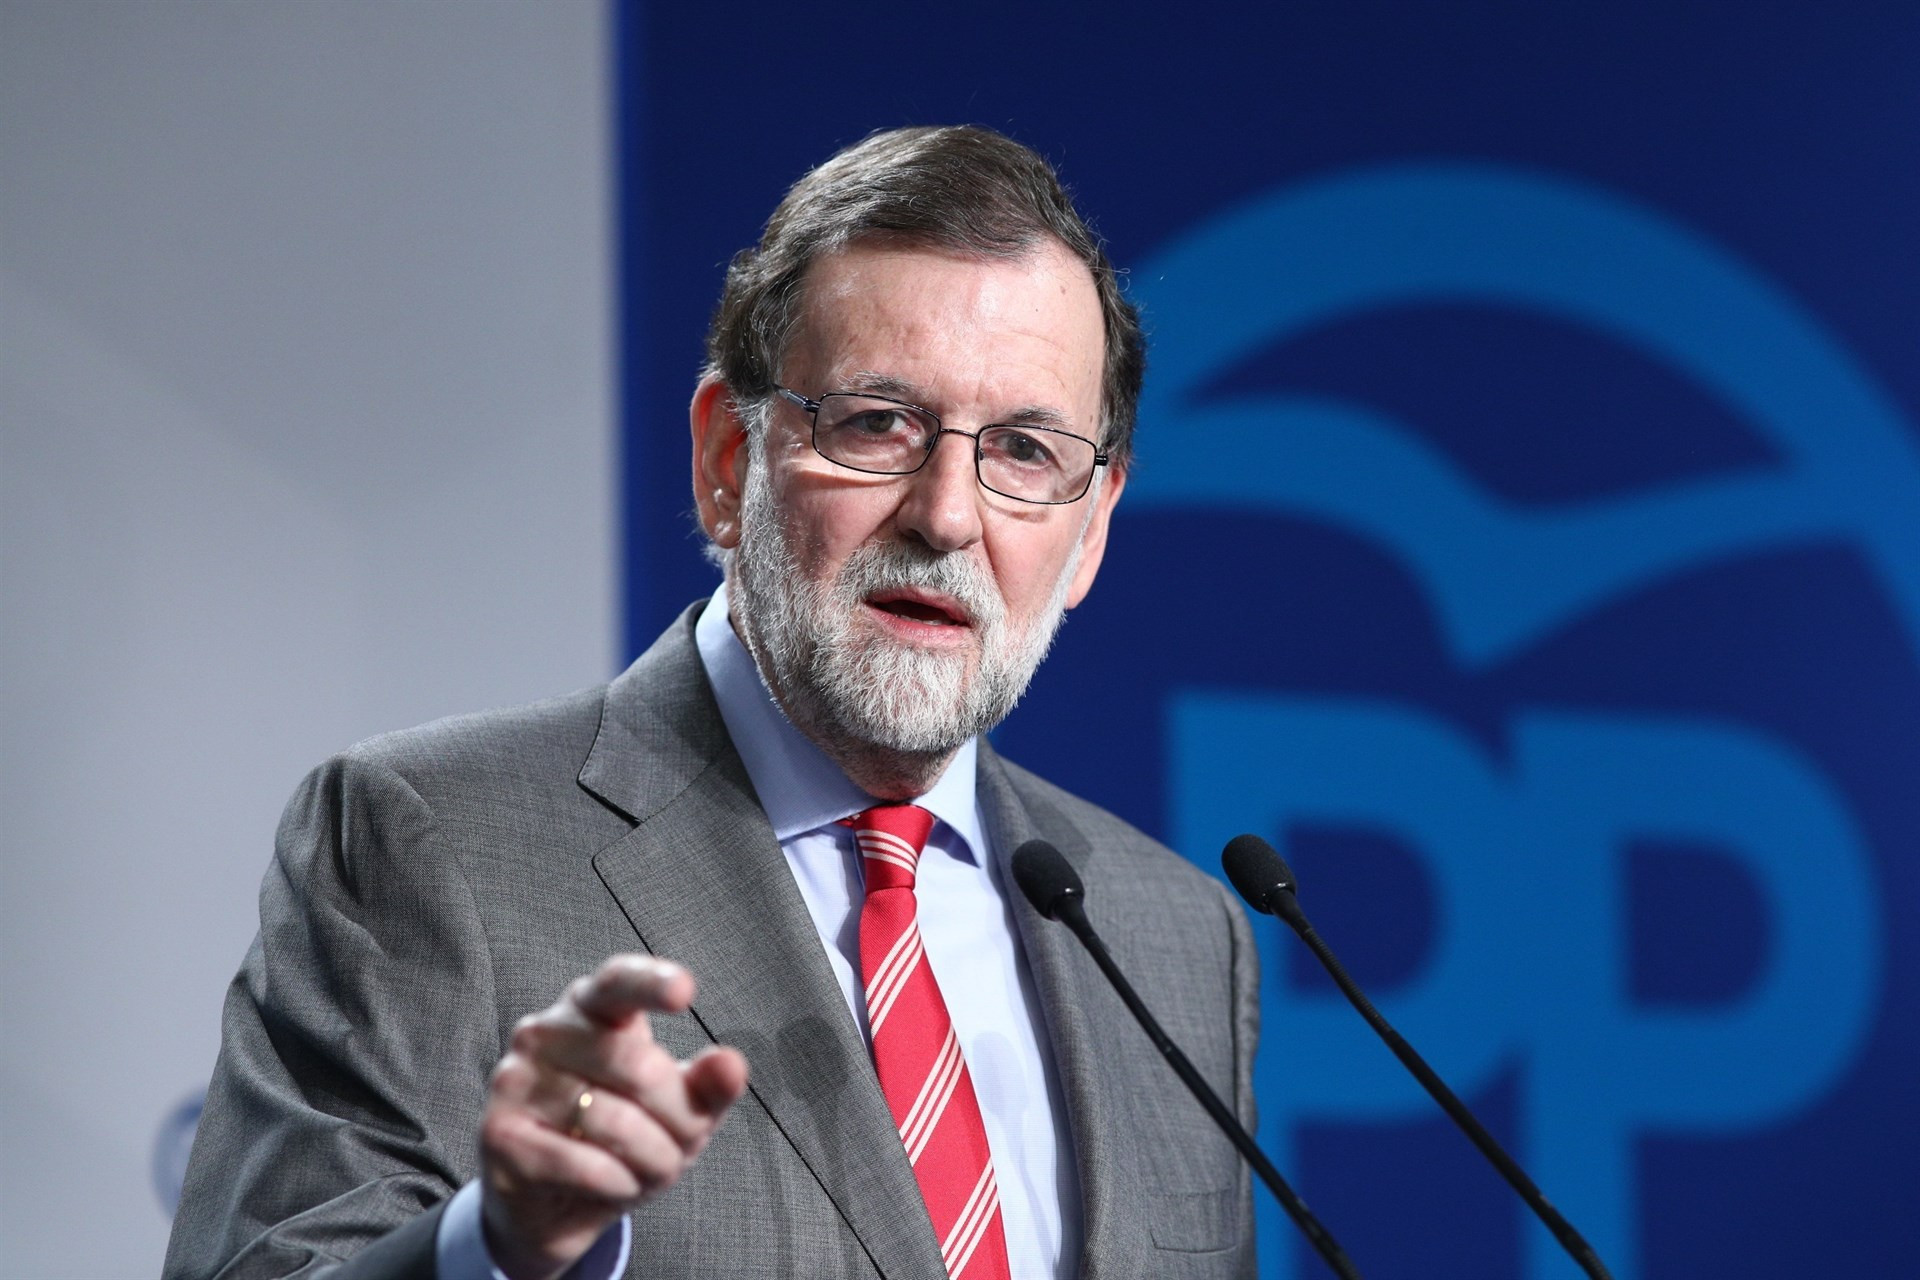 MarianoRajoy 4